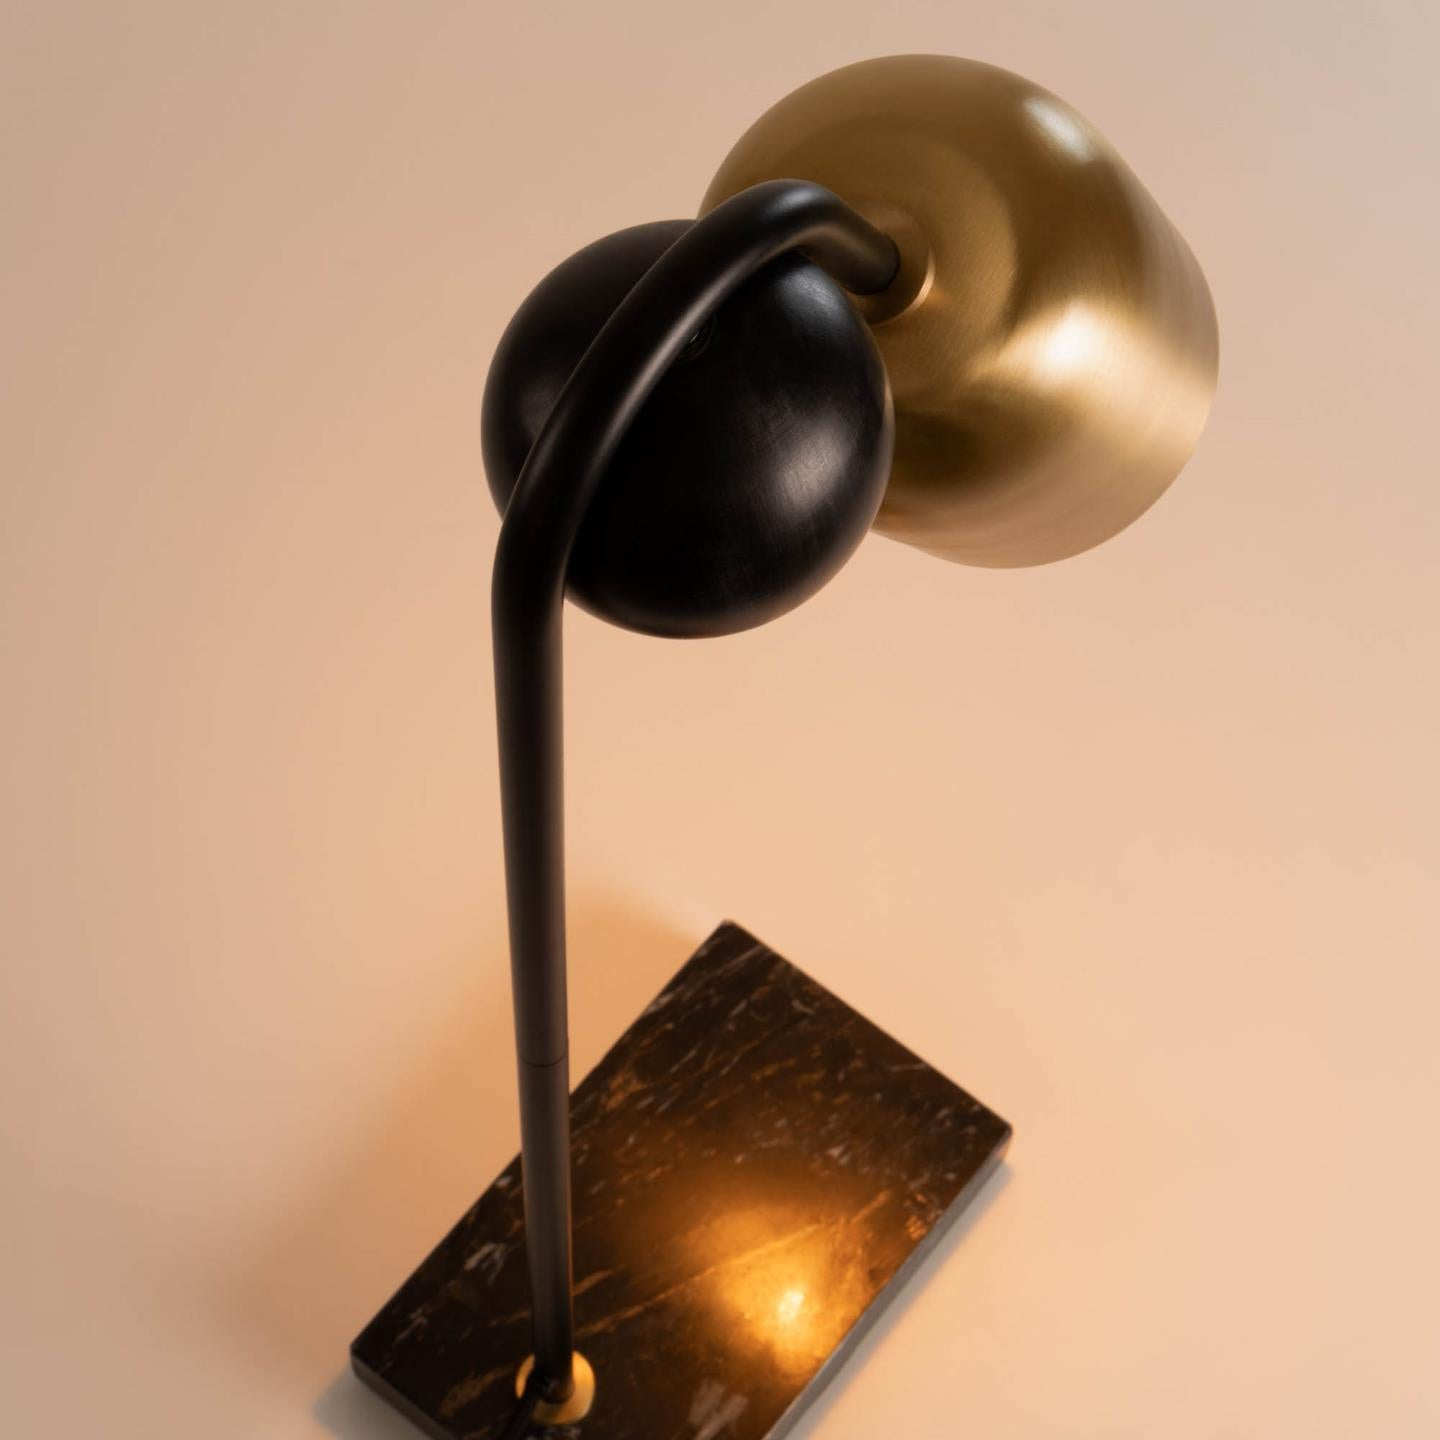 Sumi Brass Table Lamp